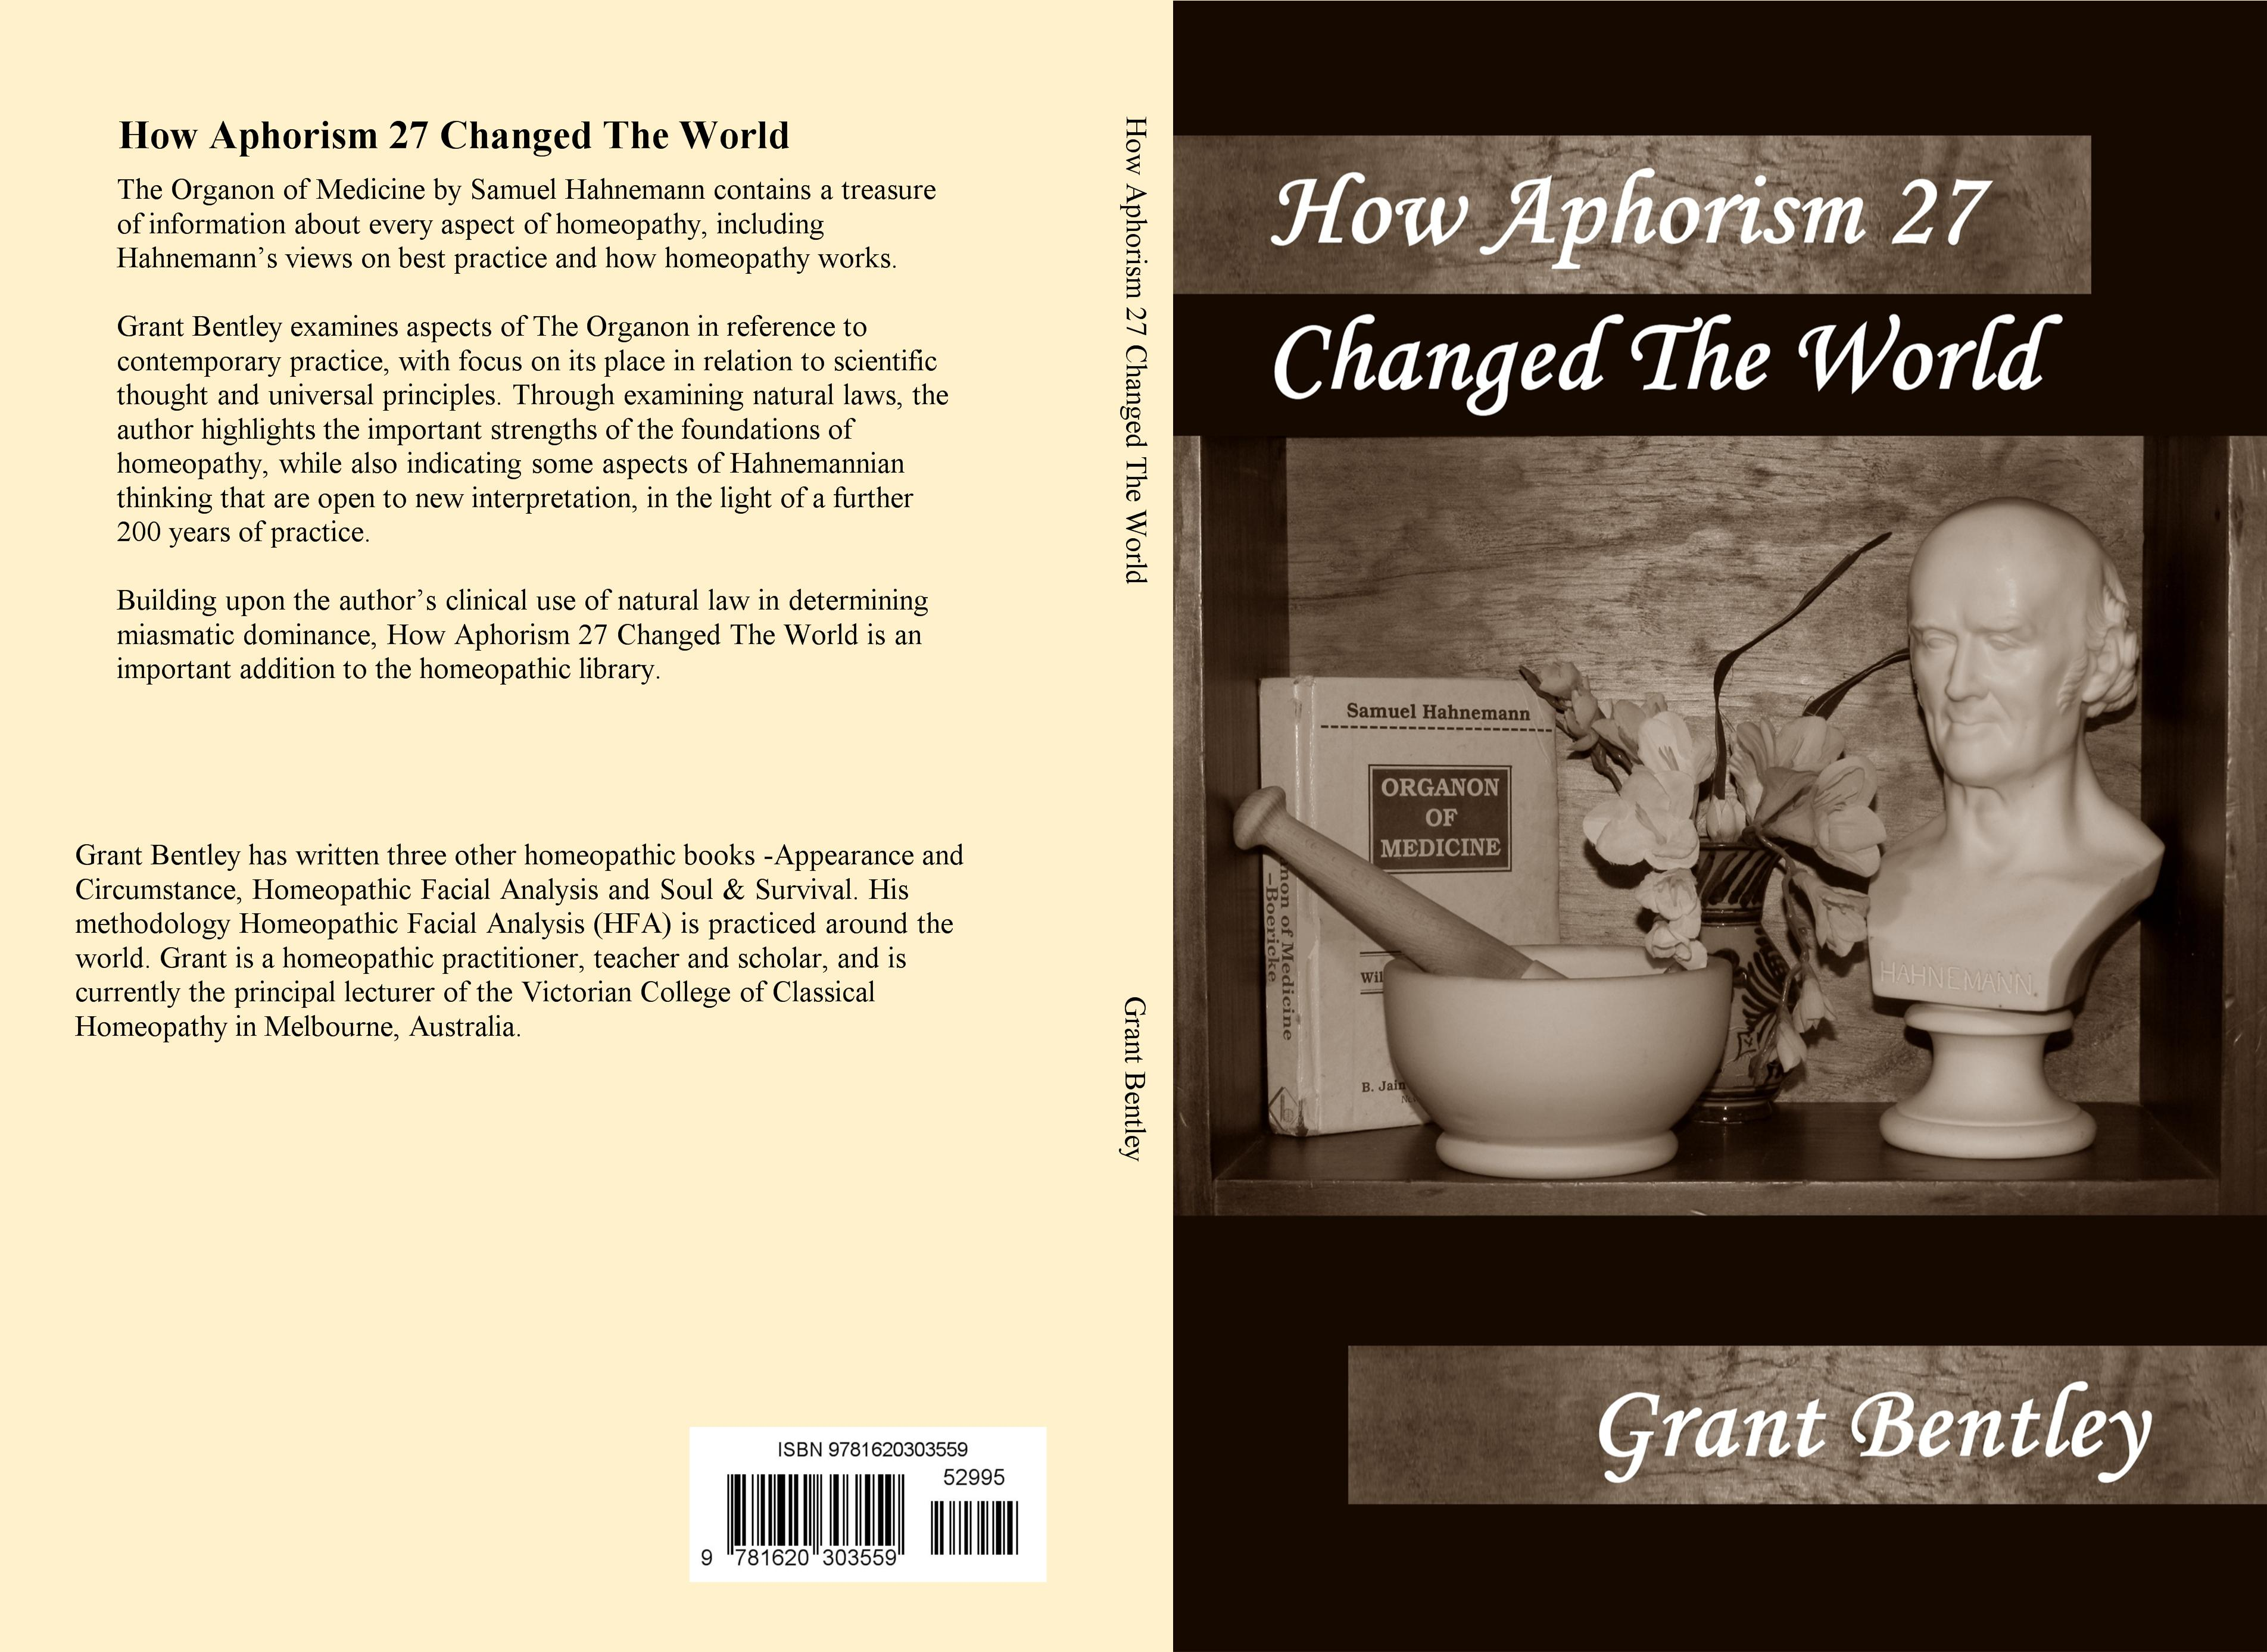 How Aphorism 27 Changed The World cover image